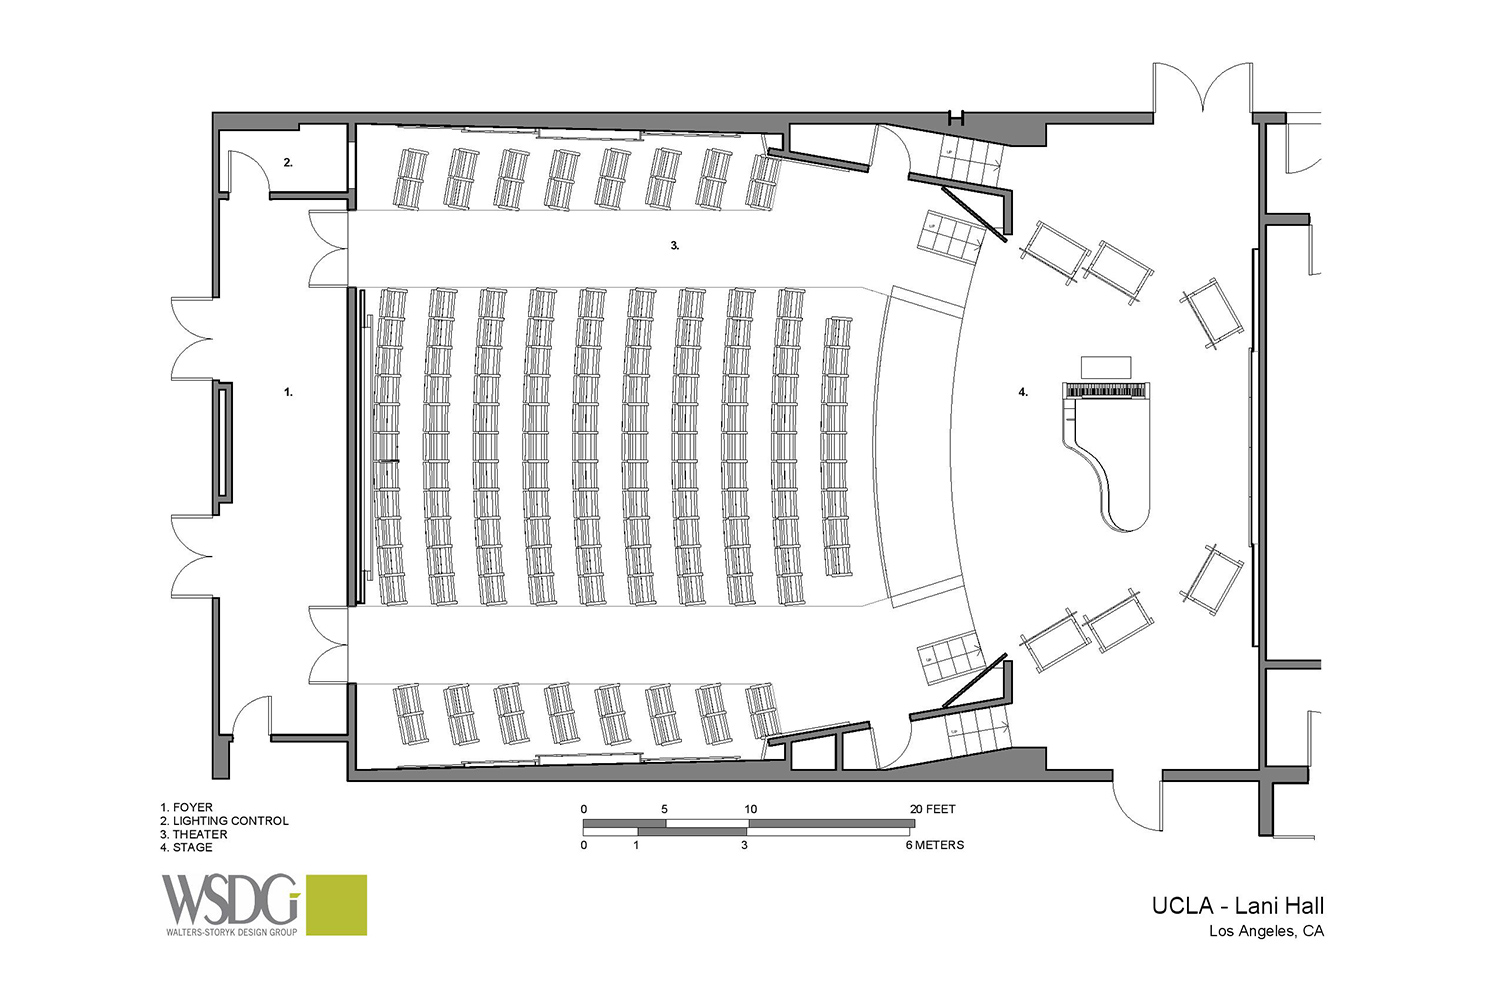 The Herb Alpert Foundation engaged WSDG to design the acoustics for a small on-campus live performance theater at the prestigious UCLA, with help of Lani Hall. Presentation drawing 1.